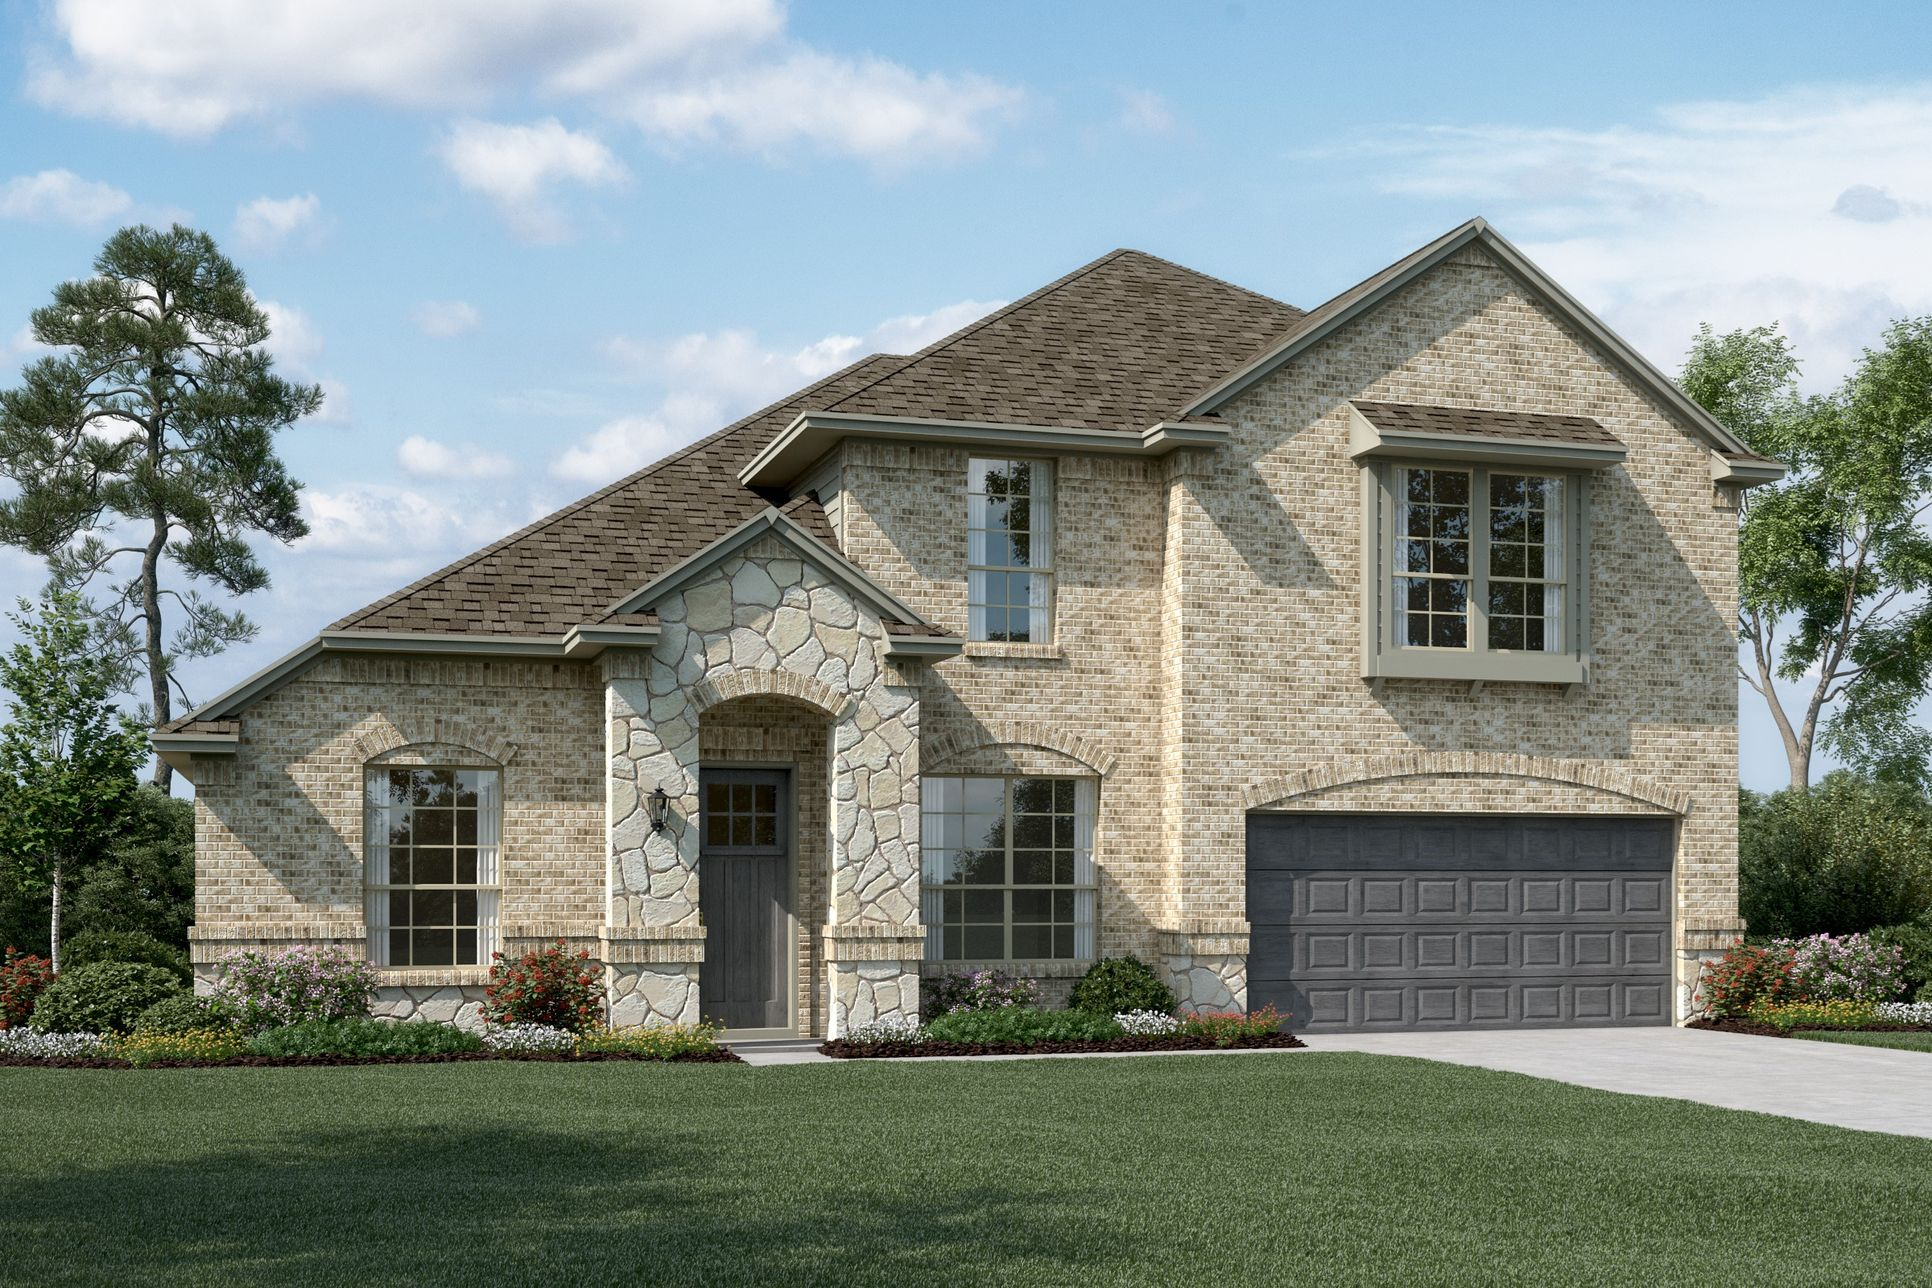 Exterior:Brentwood II - C - Shown with stone